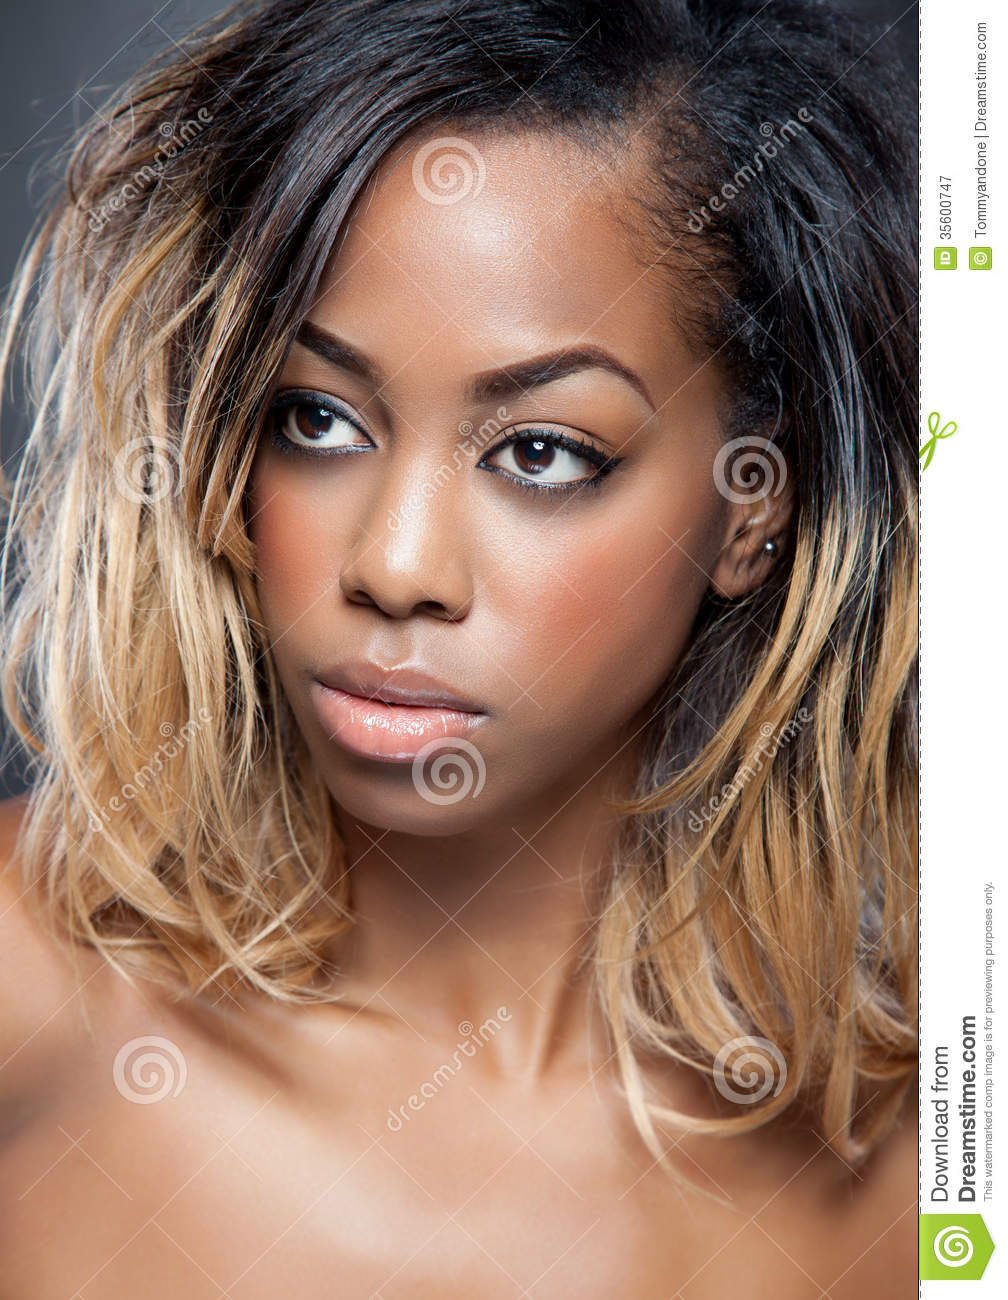 Attractive black woman